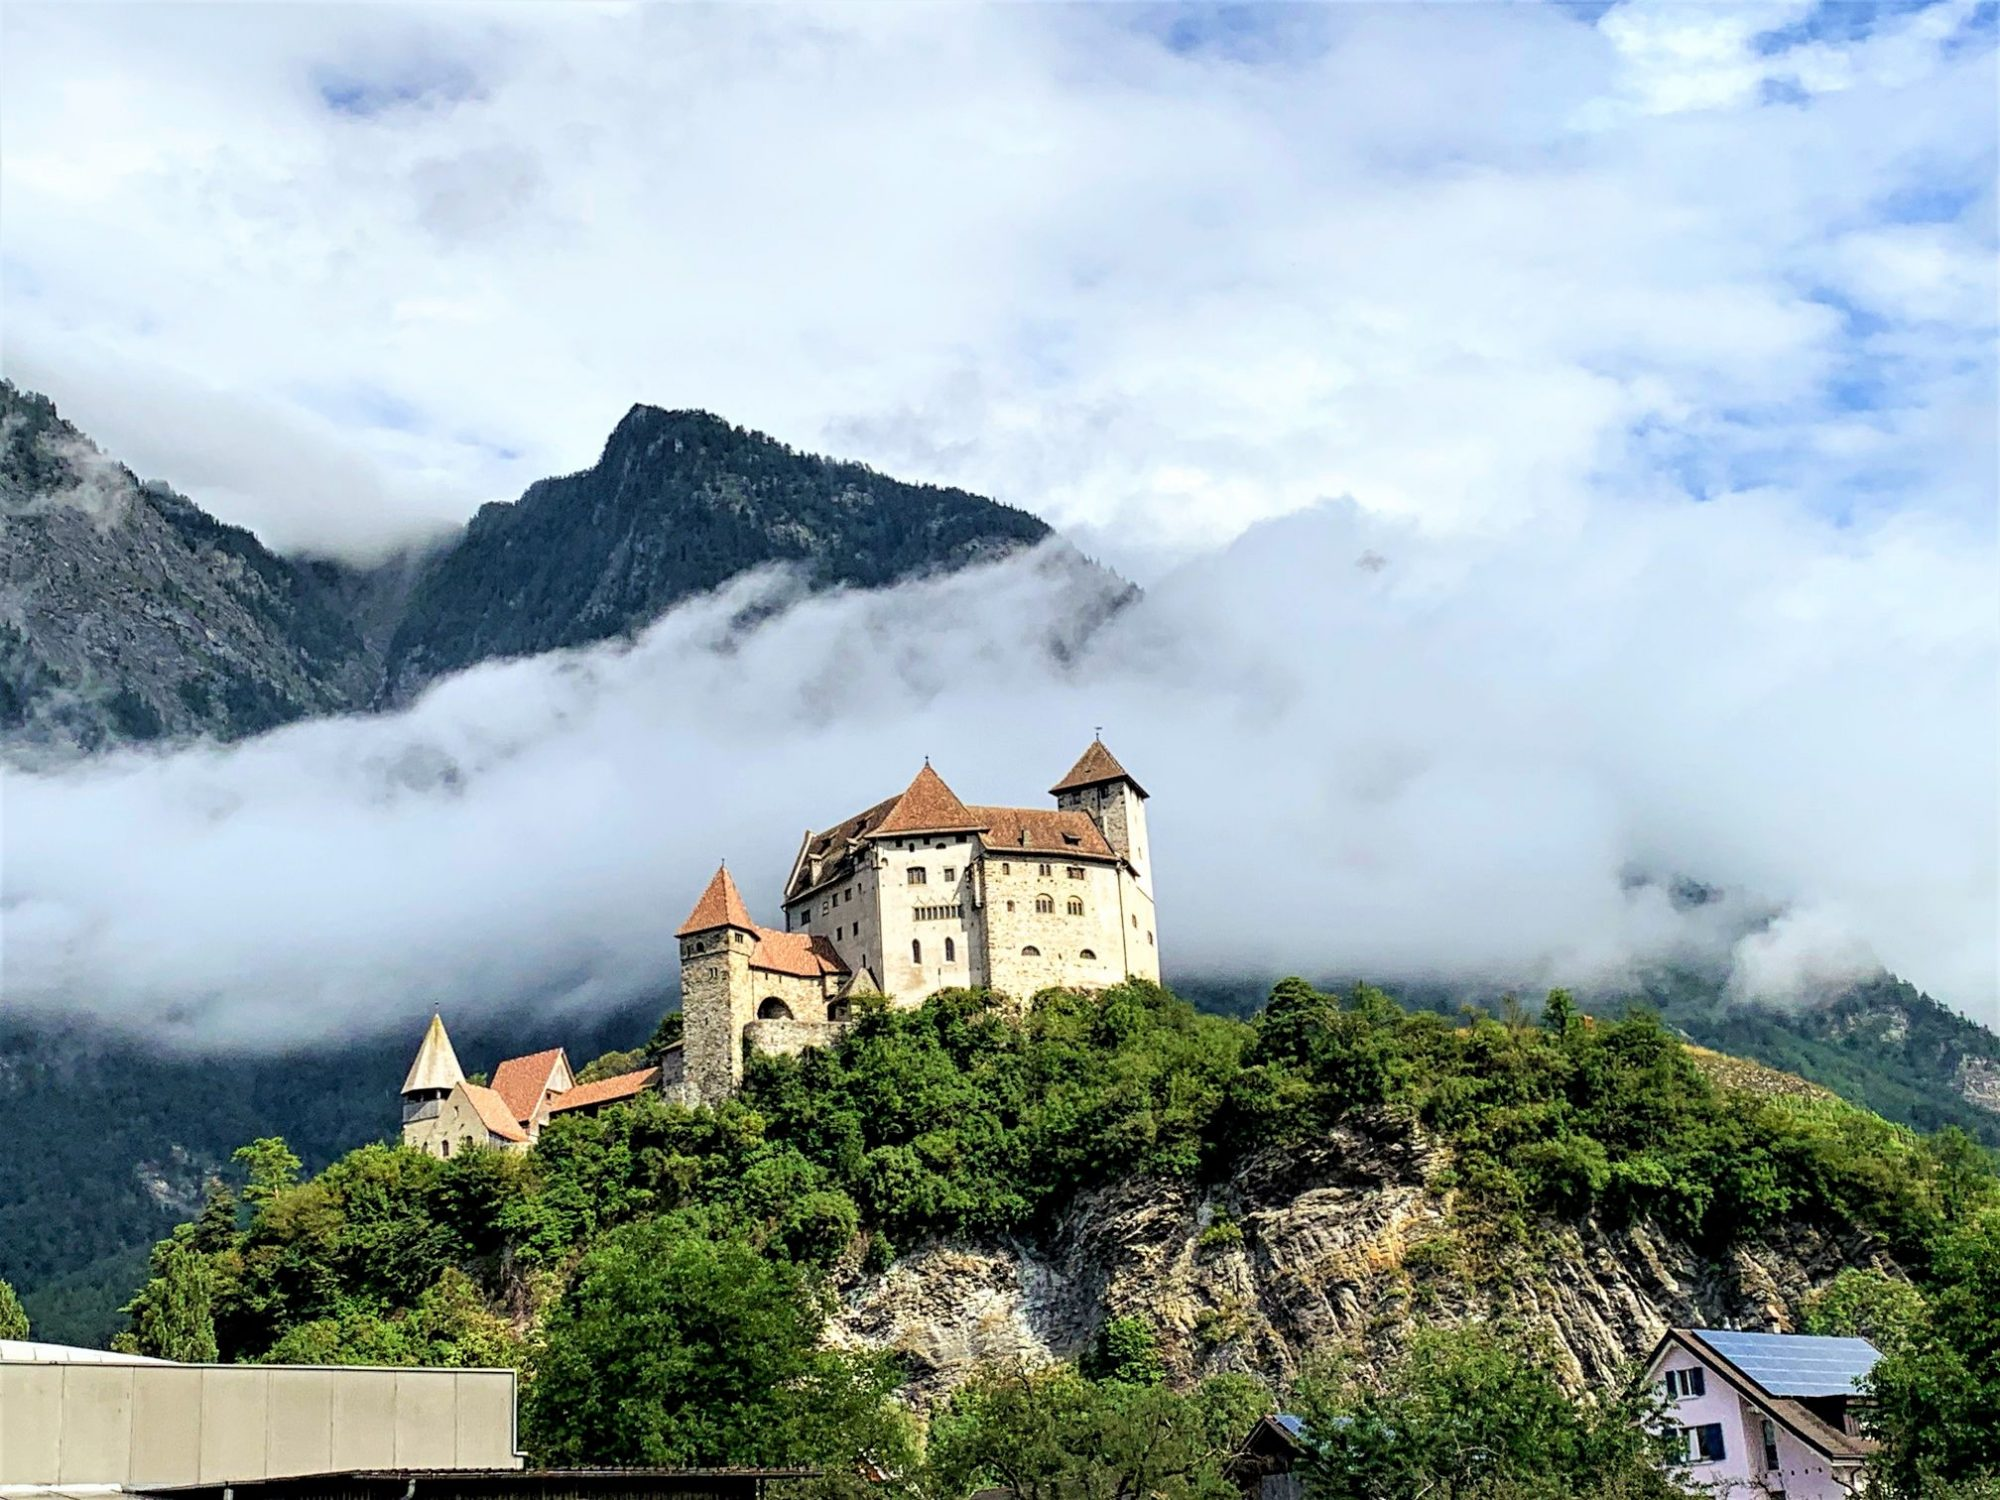 One day in Liechtenstein – Top things to do